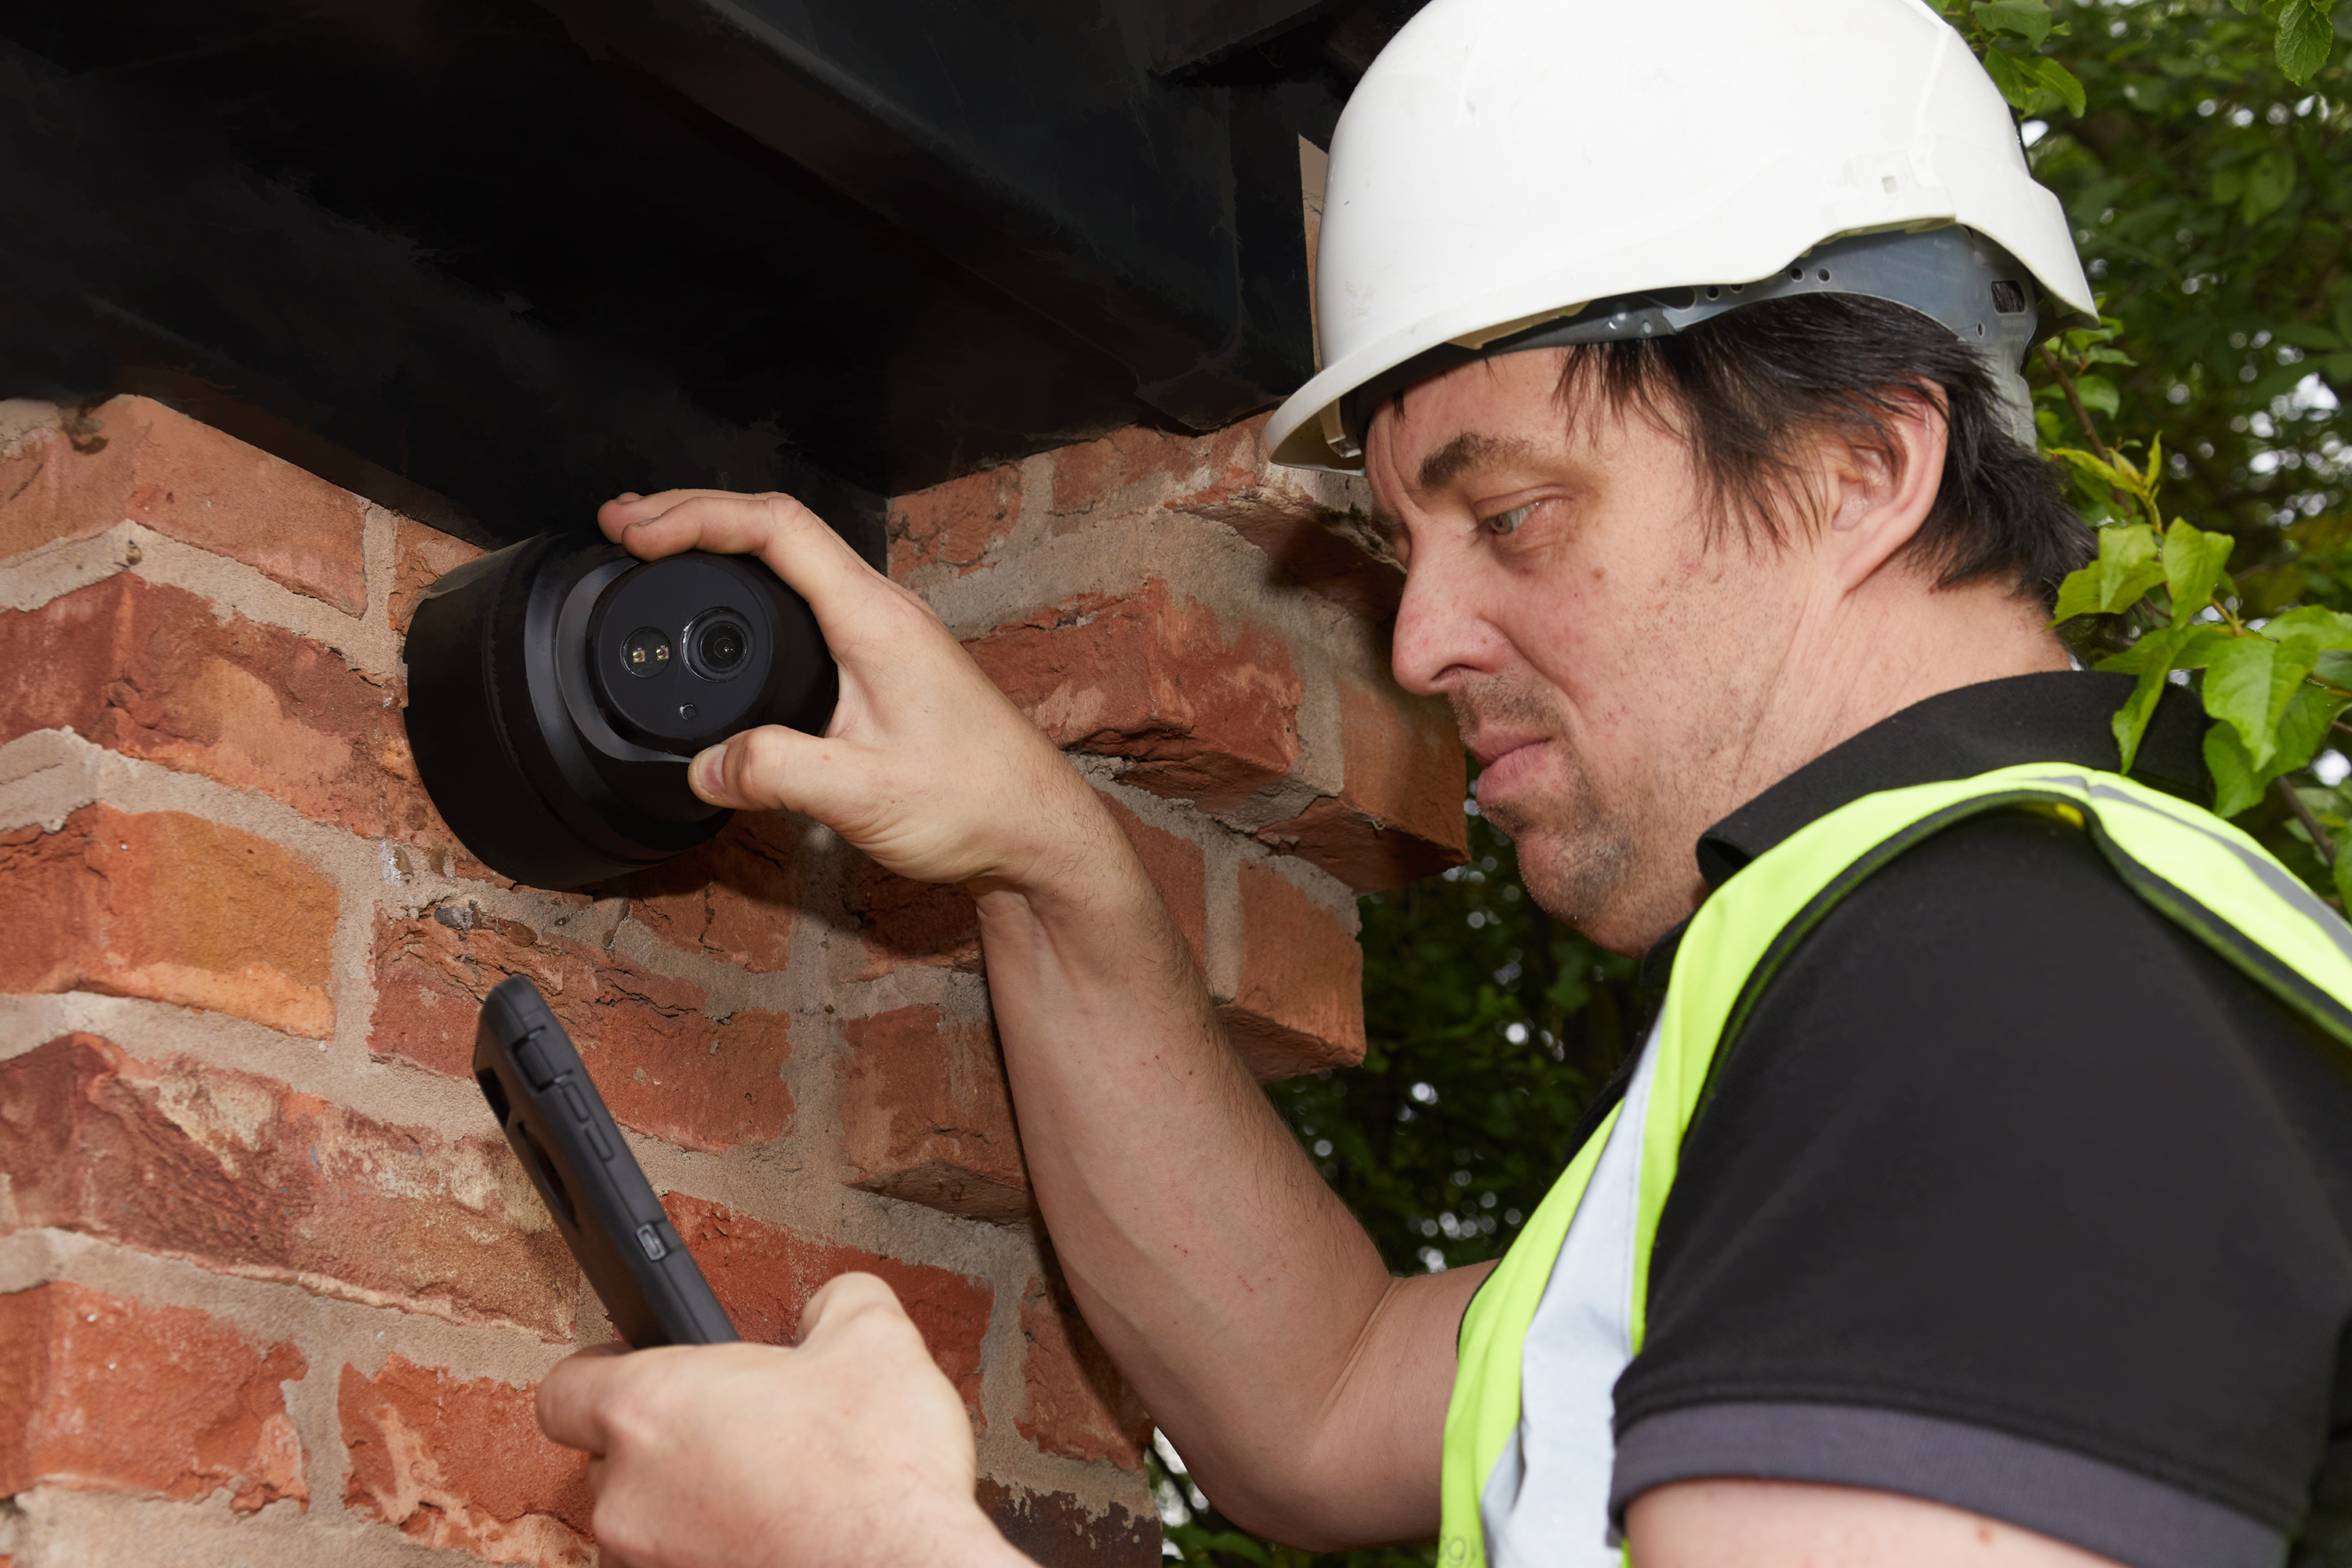 Wired security system health checks on installation